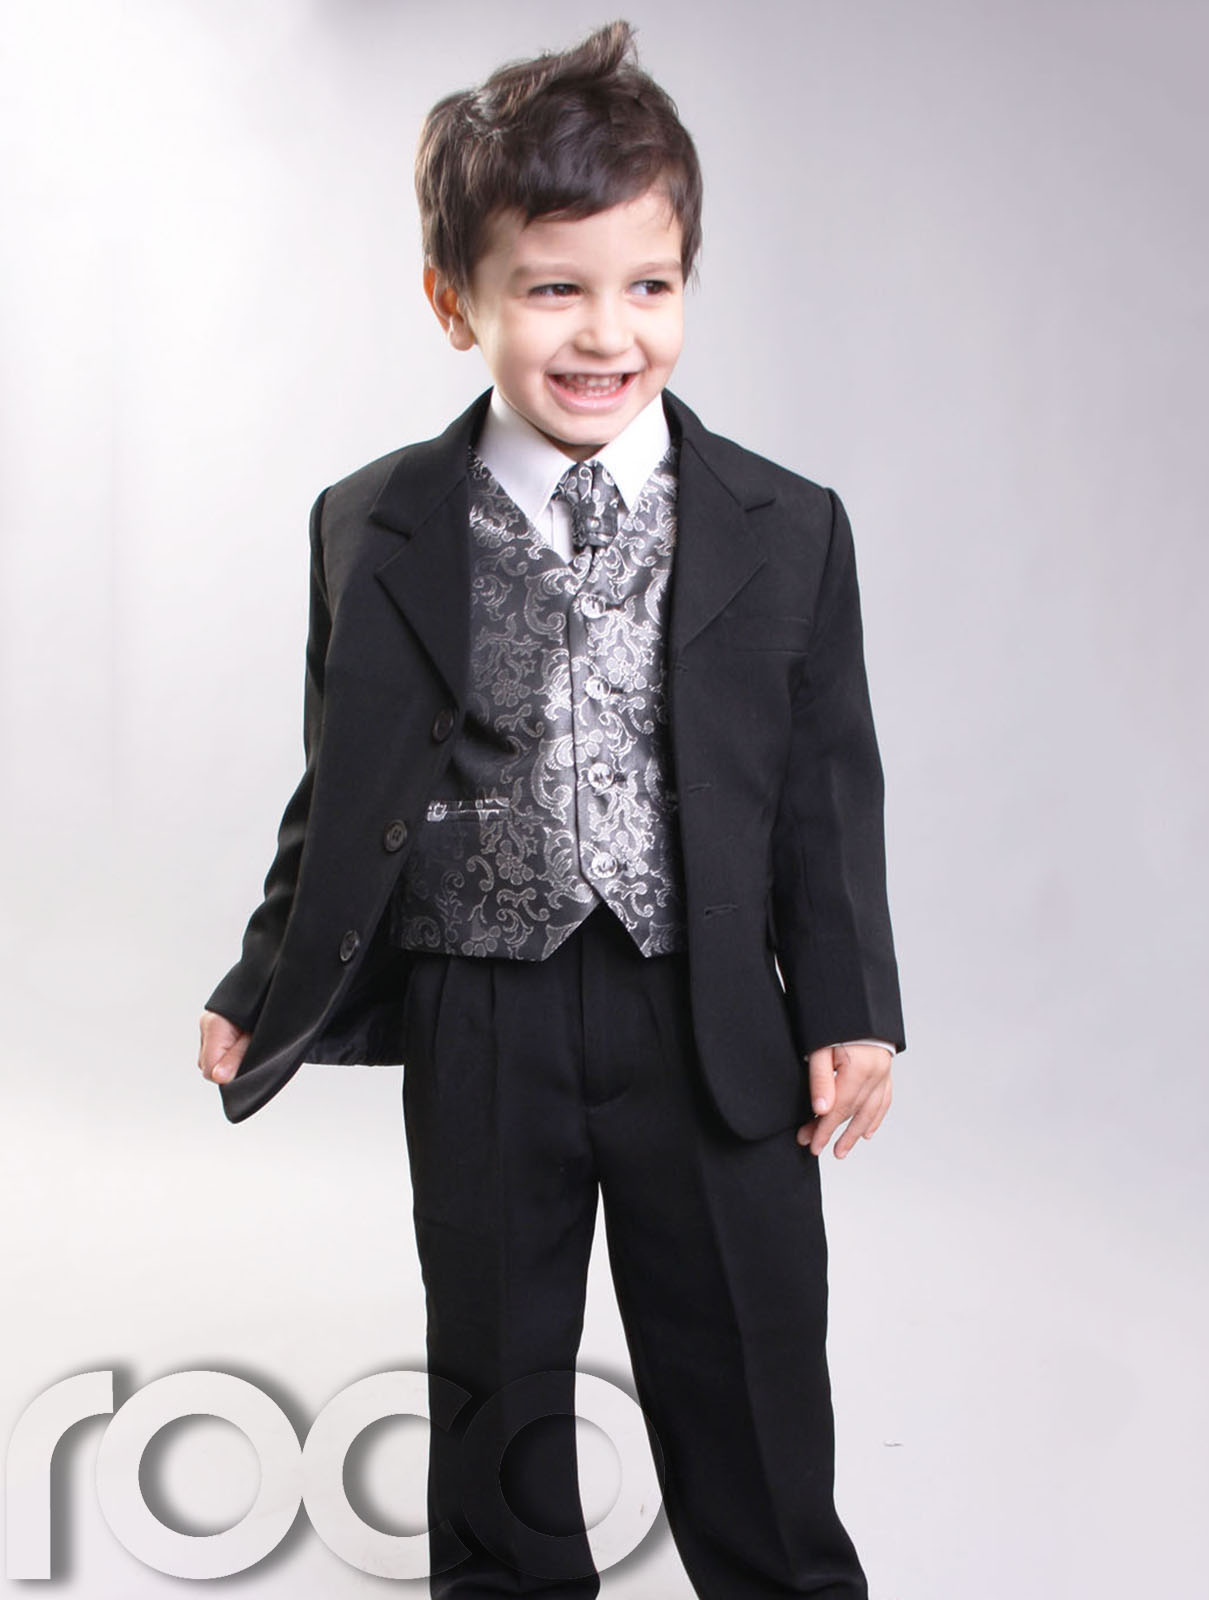 Choosing suits for boys is the most difficult task these days and it is quite difficult to find classy boys suits at affordable prices. But these days there are a wide range of suits that are available for young boys, who are in the initial stage of wearing suits.